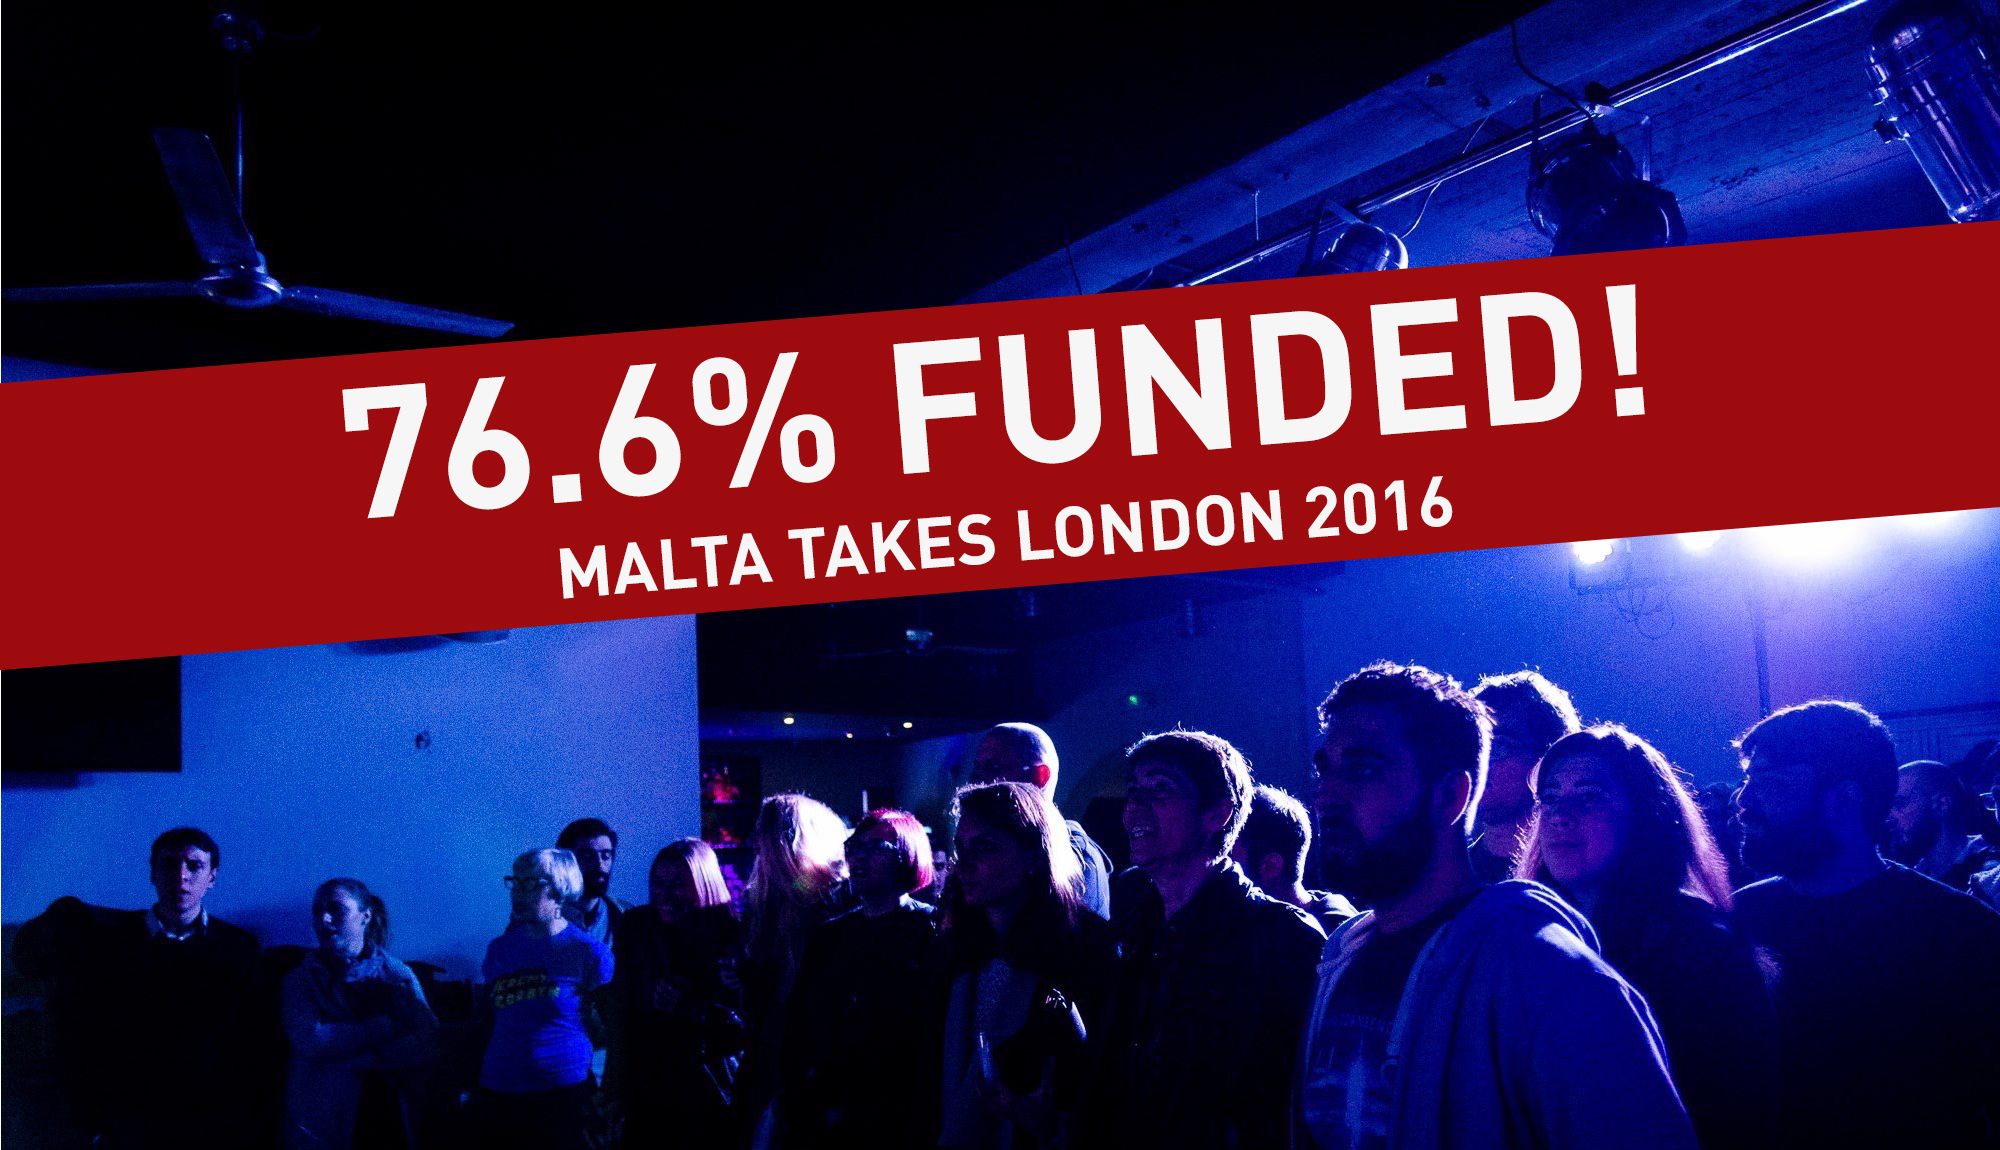 malta takes london crowdfunding